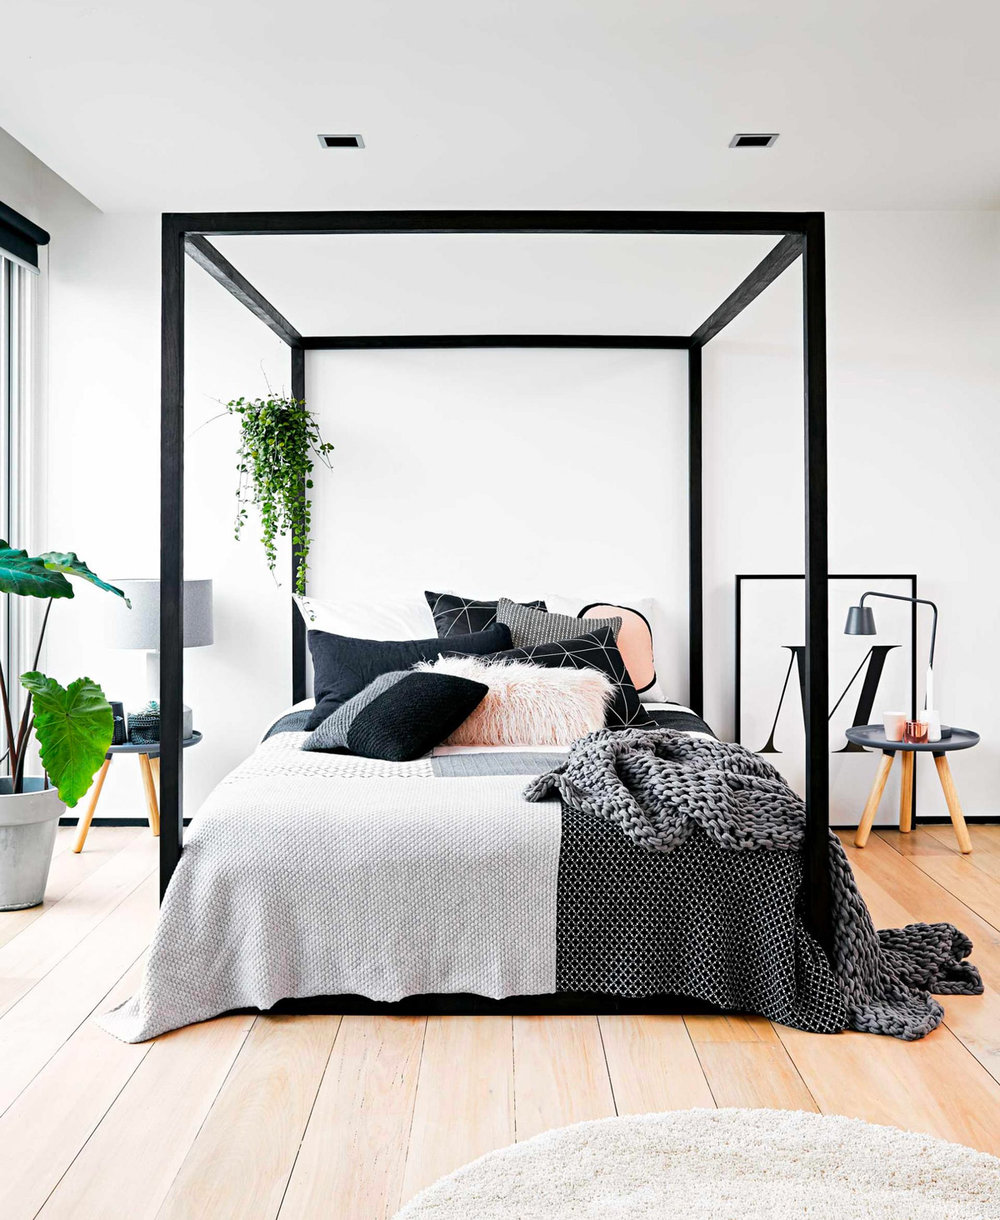 thick-frame-modern-four-poster-bed.jpg